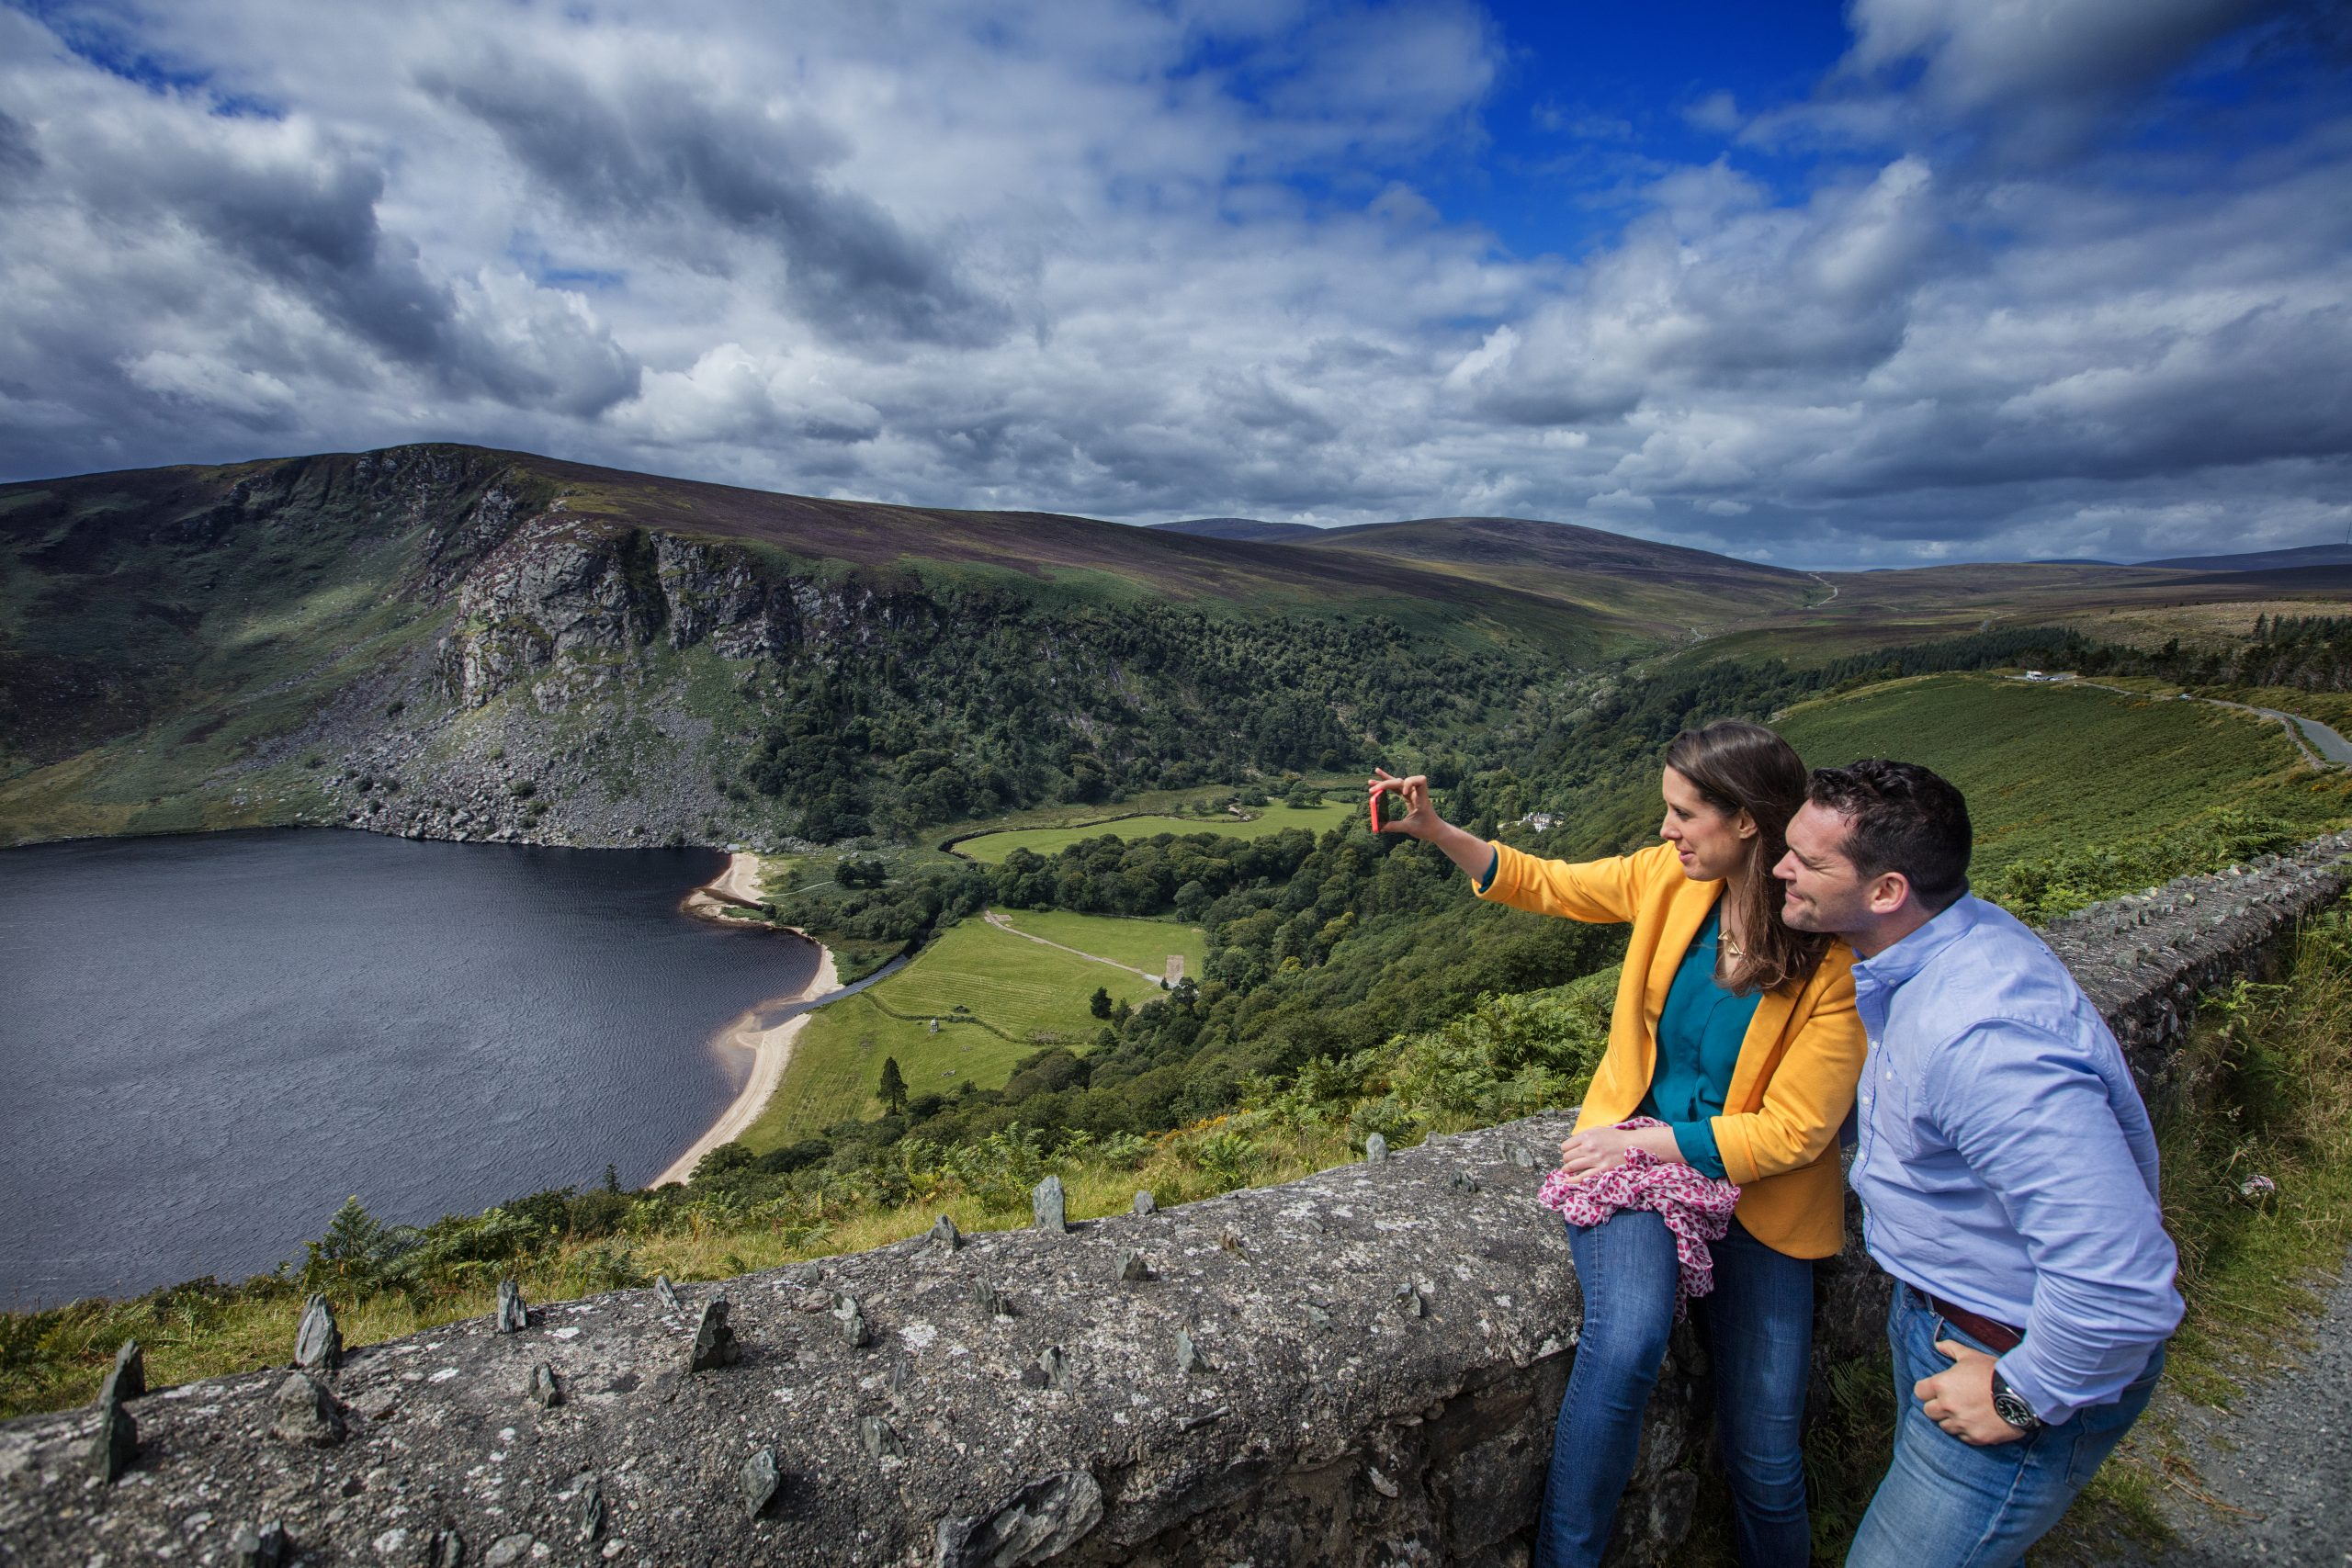 Wicklow day tour photo stop, Loch Tay, Guinness Lake, Ireland